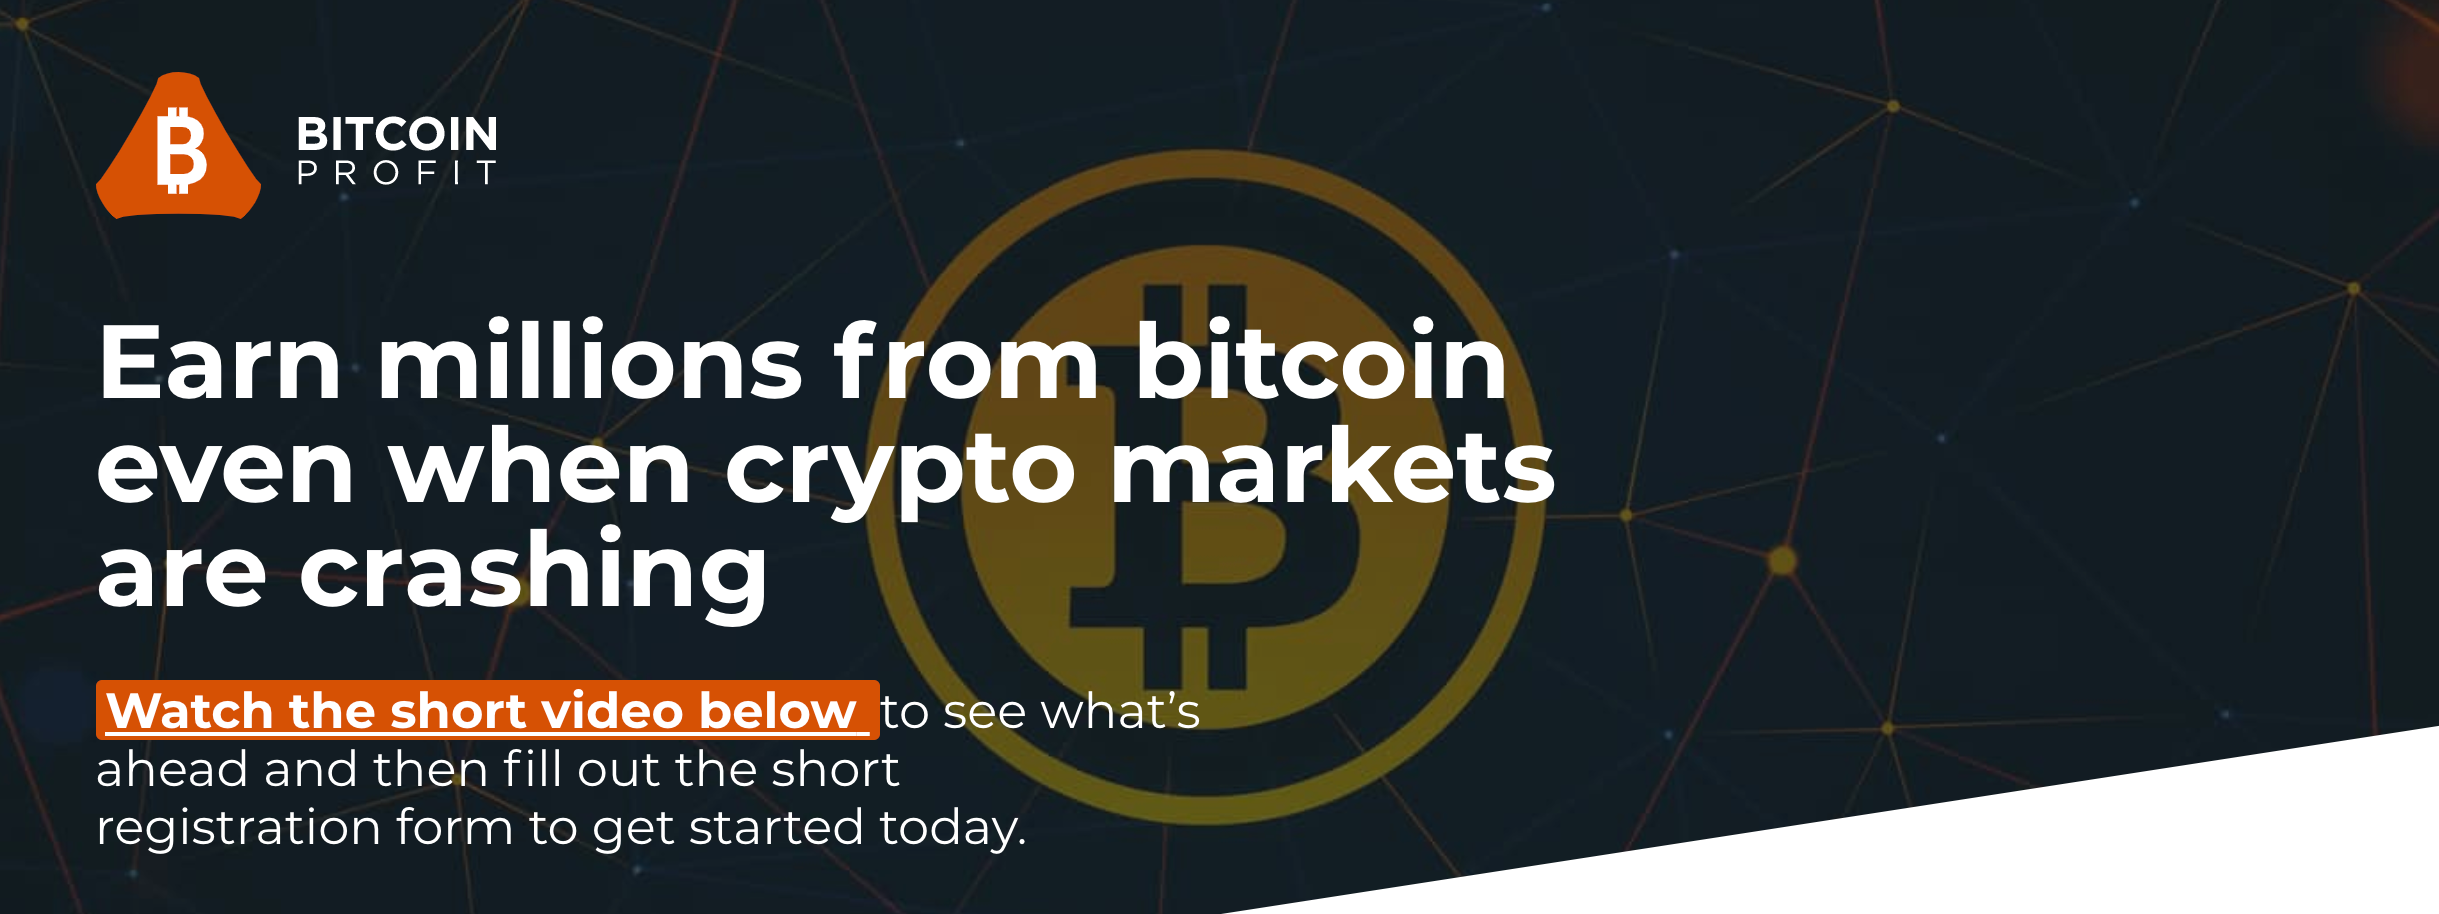 Review of Bitcoin Profit